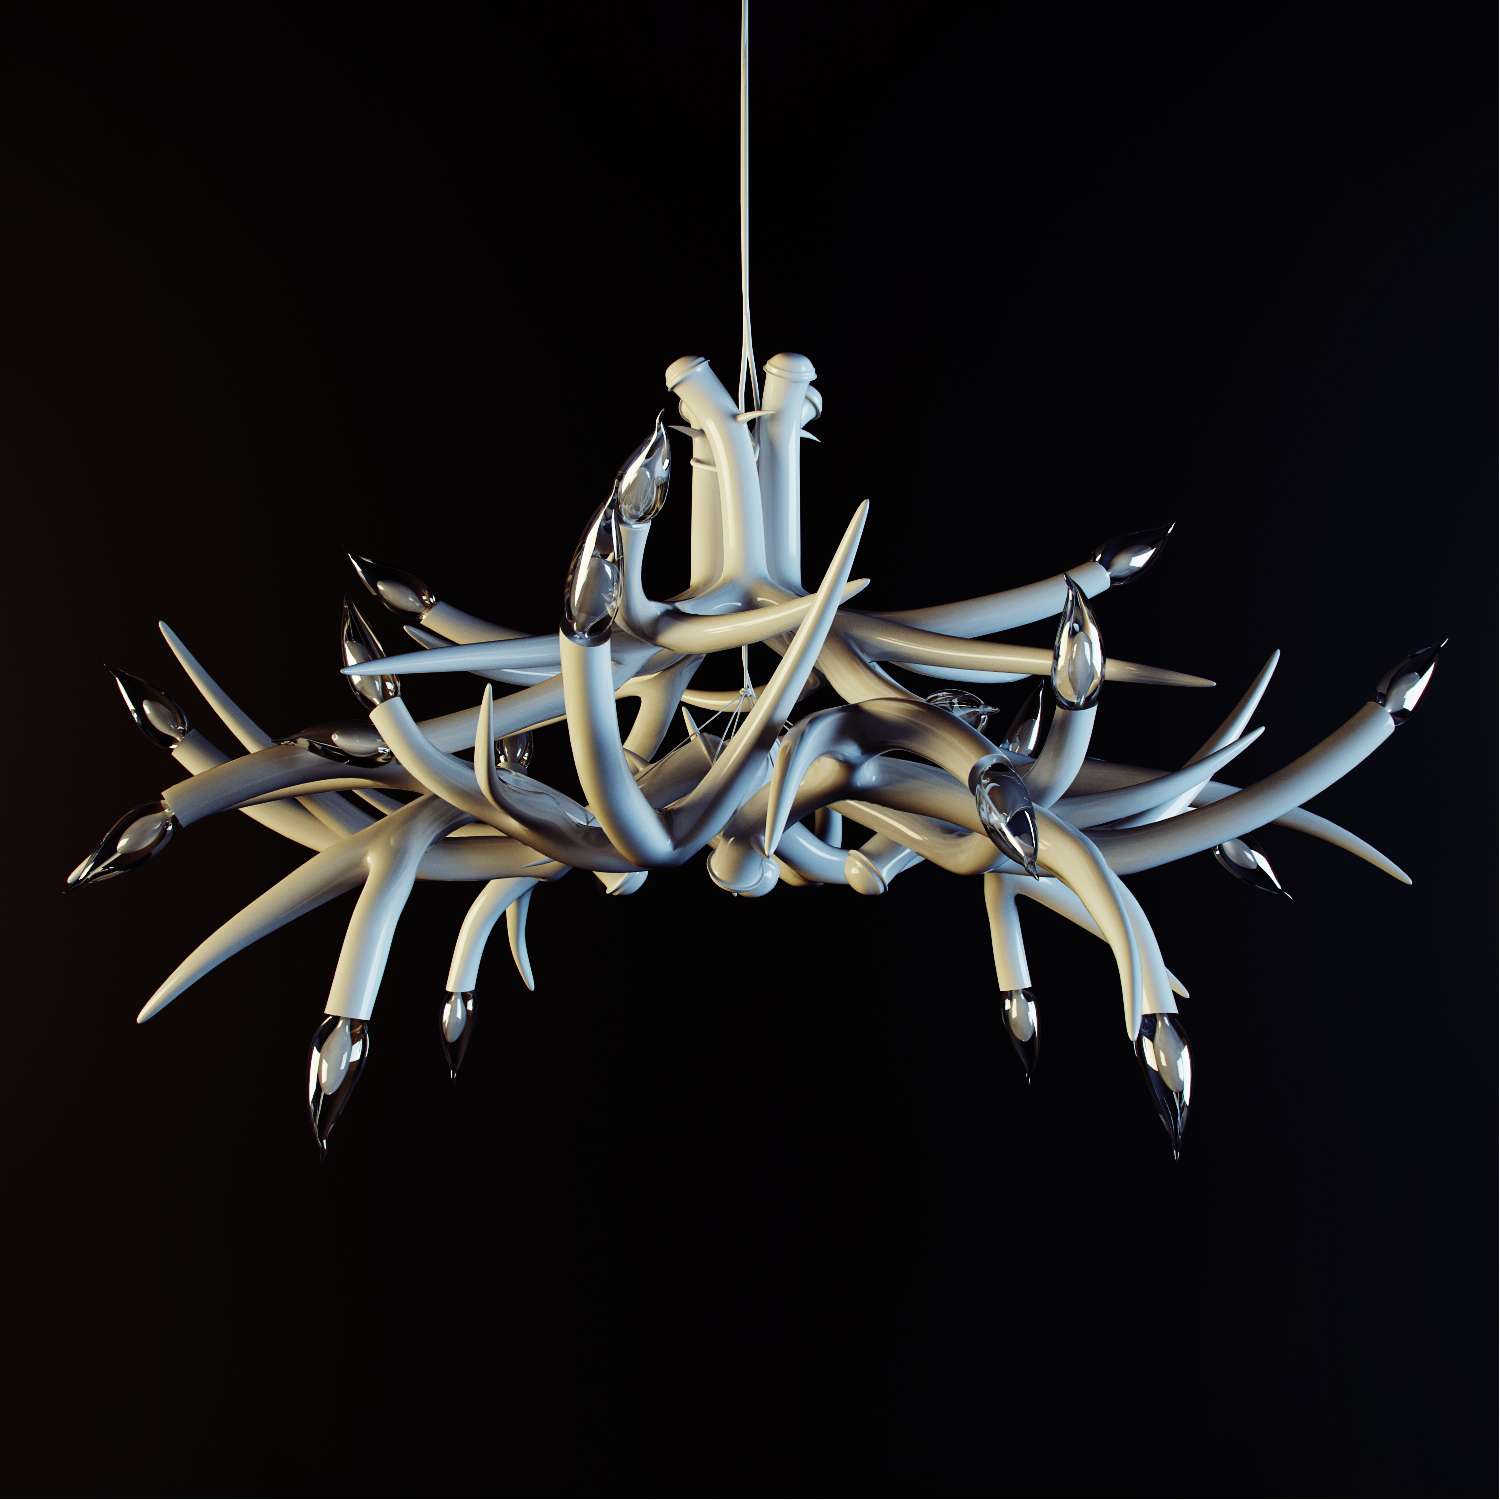 Superordinate Antler Lamps by Jason Miller